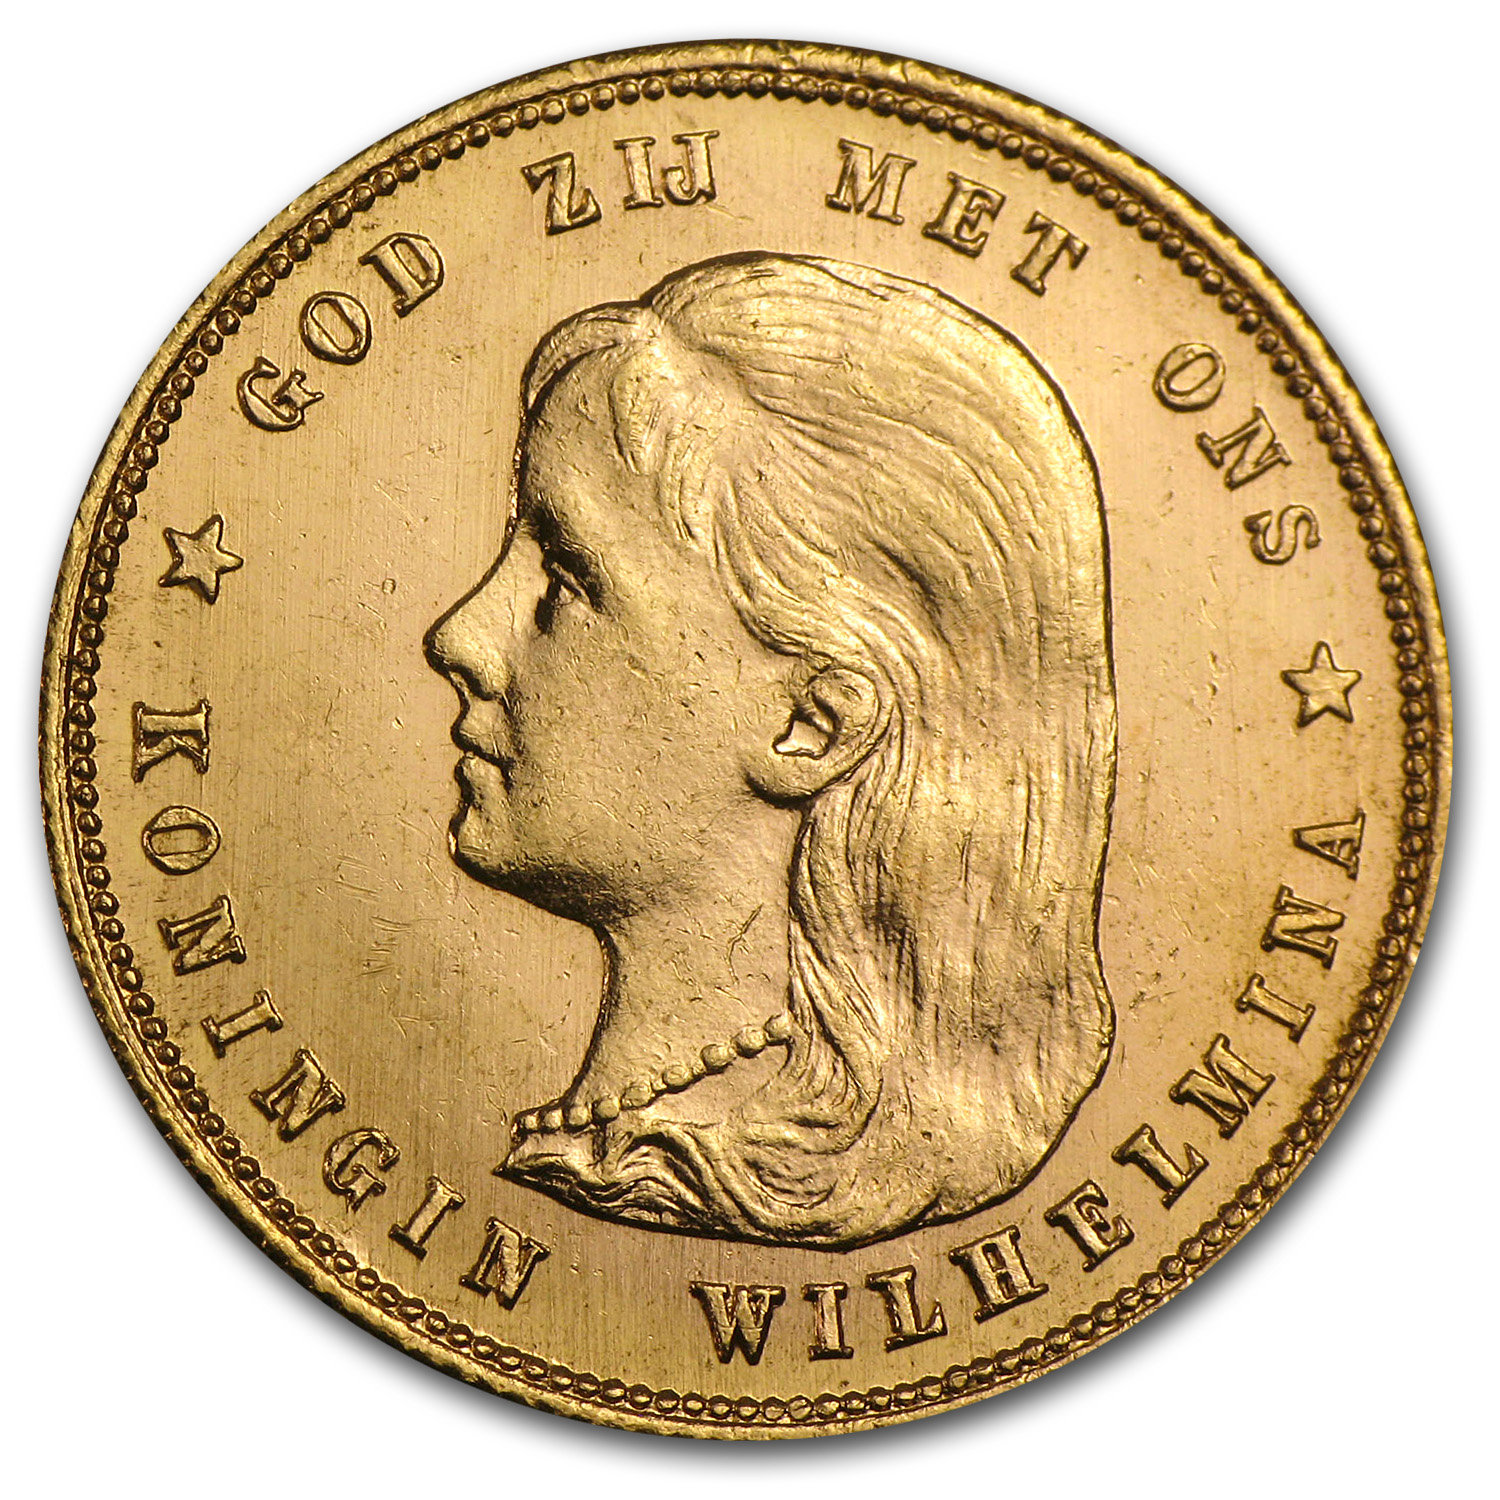 Netherlands 1897 Gold 10 Guilder AU or Better